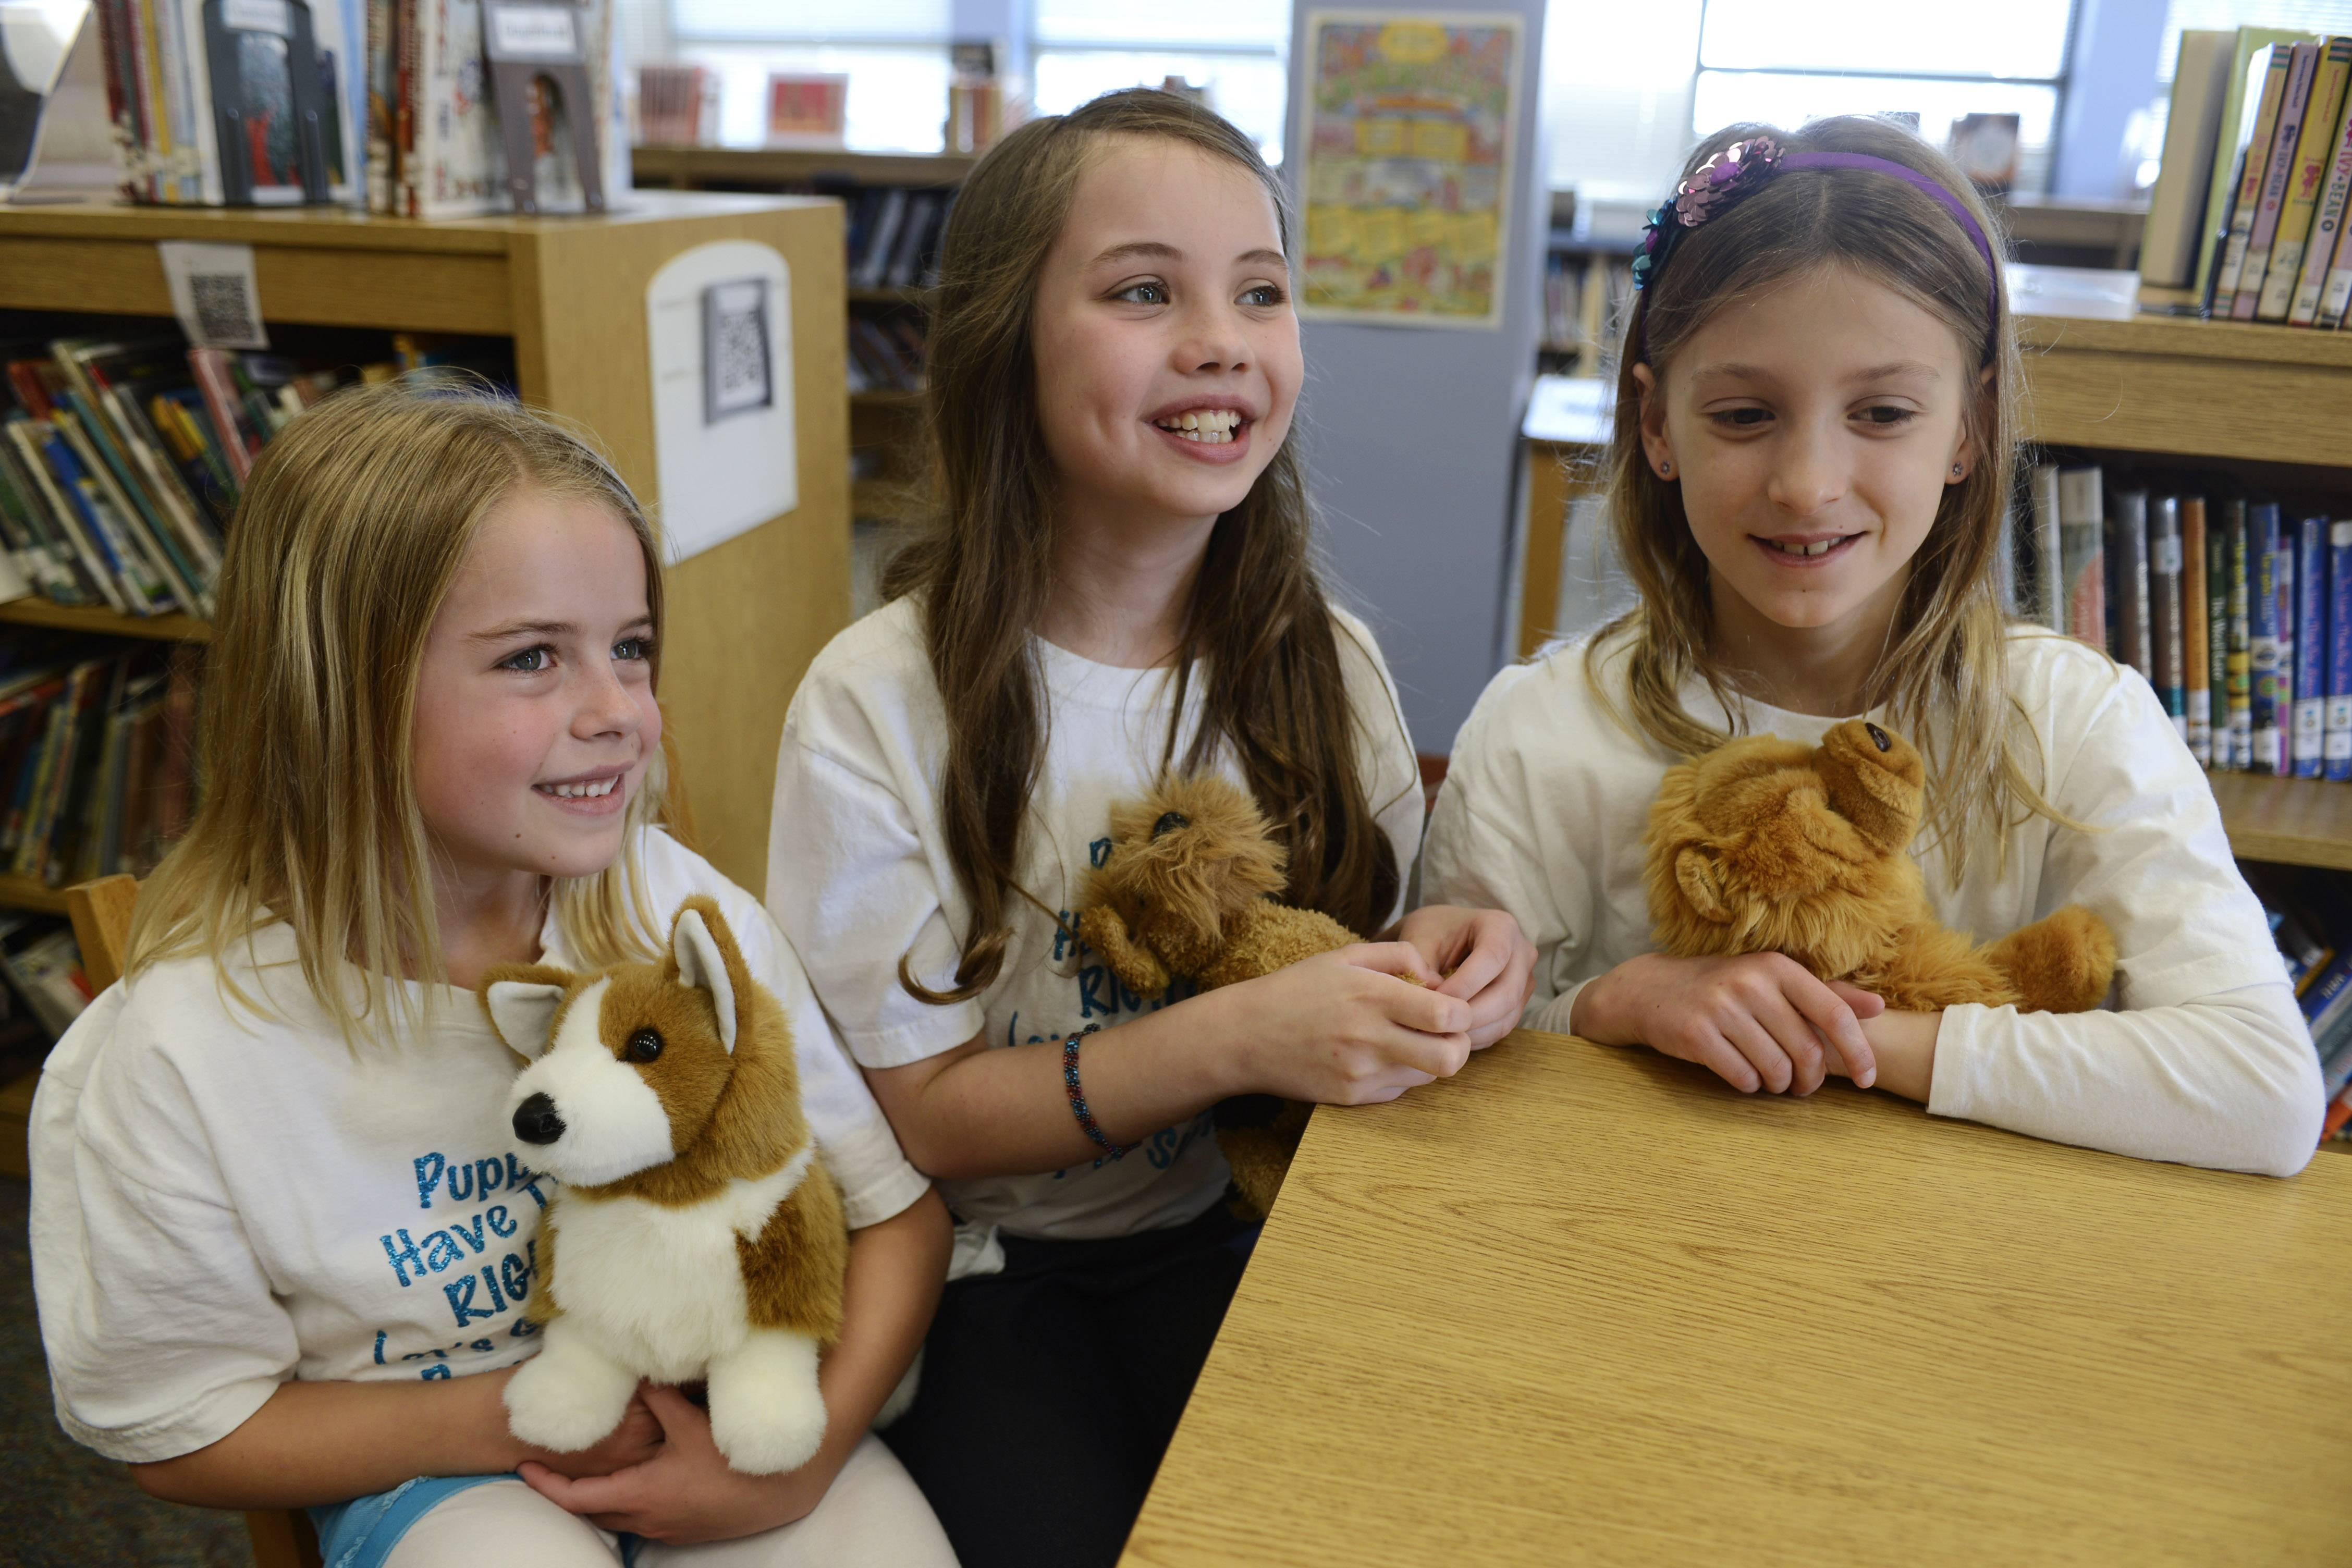 Left to right, Patton School third graders Claire Hackmann, 8, Maddie O'Dell, 9, and Brooke Martin, 8, talk about their recent presentation before the Illinois State Legislature urging them to pass a bill outlawing puppy mills in Illinois.